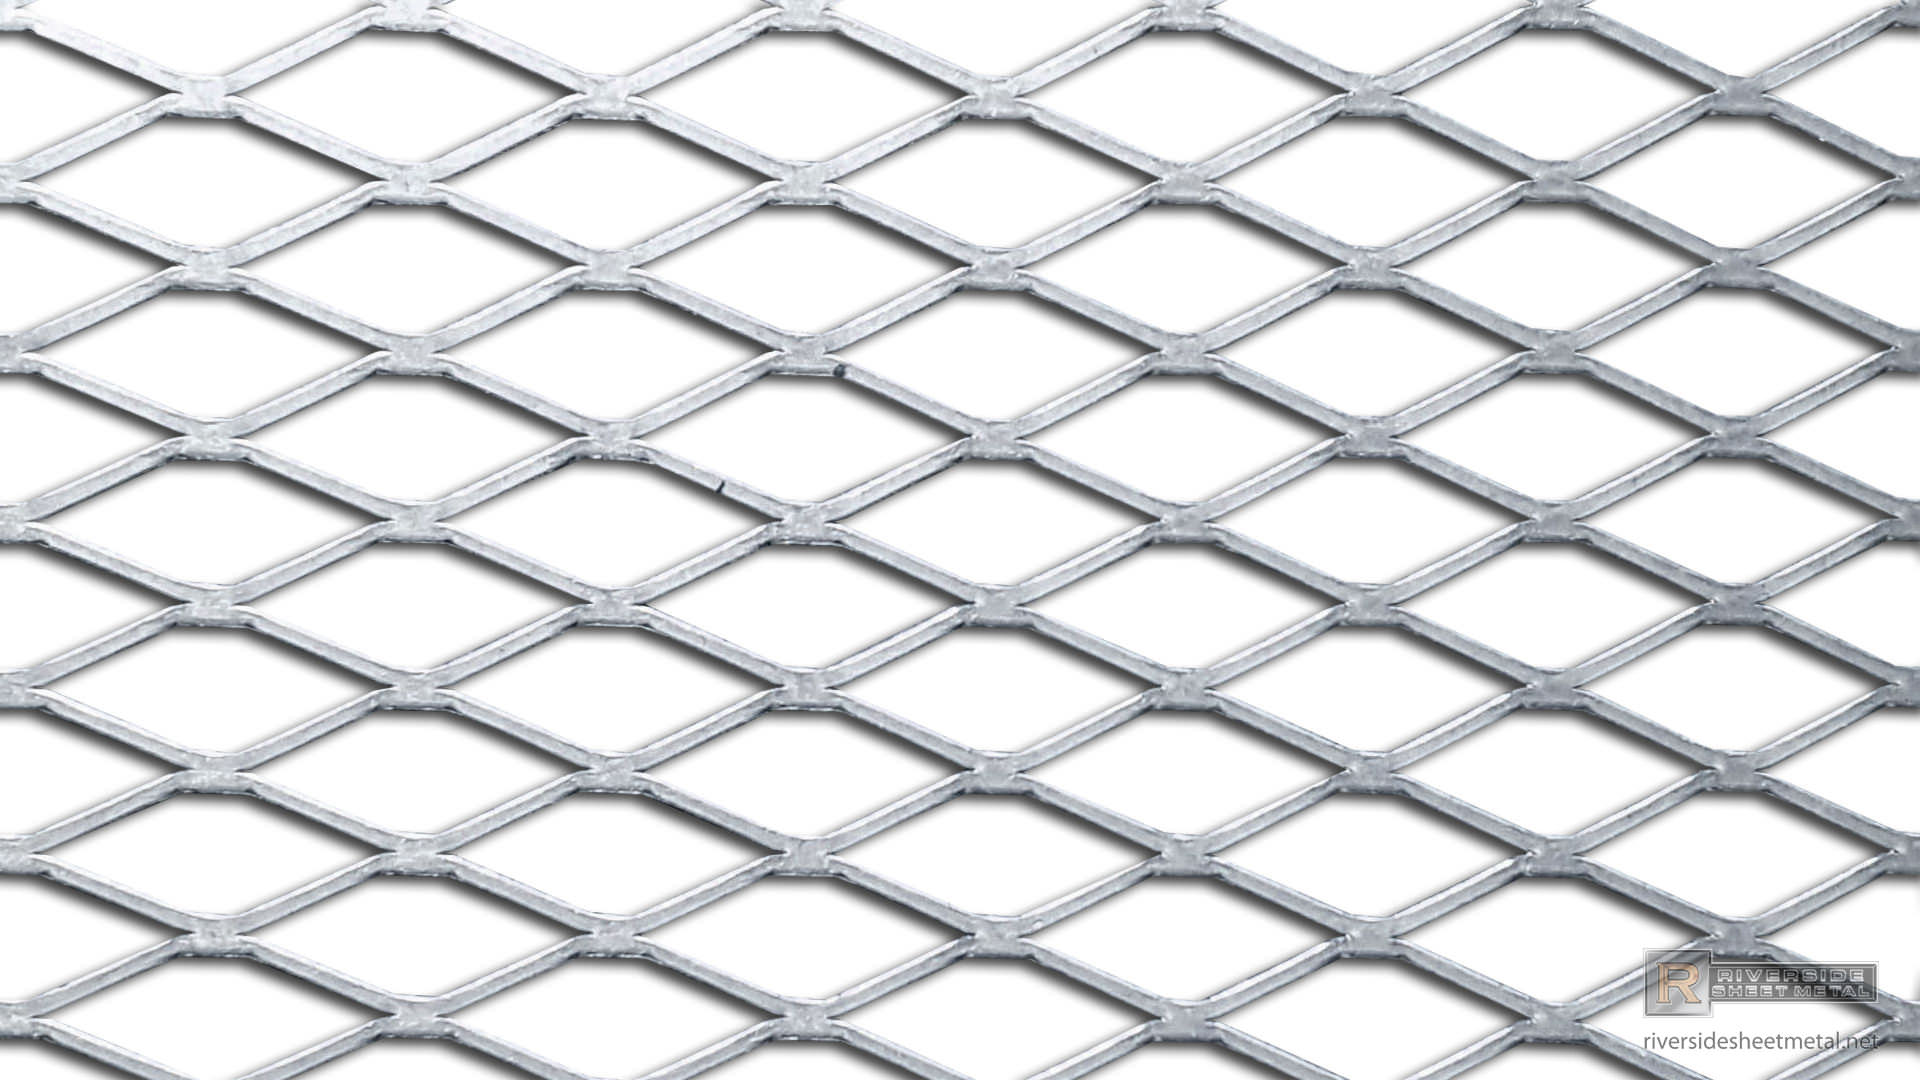 Stainless Steel Expanded Sheet Supply